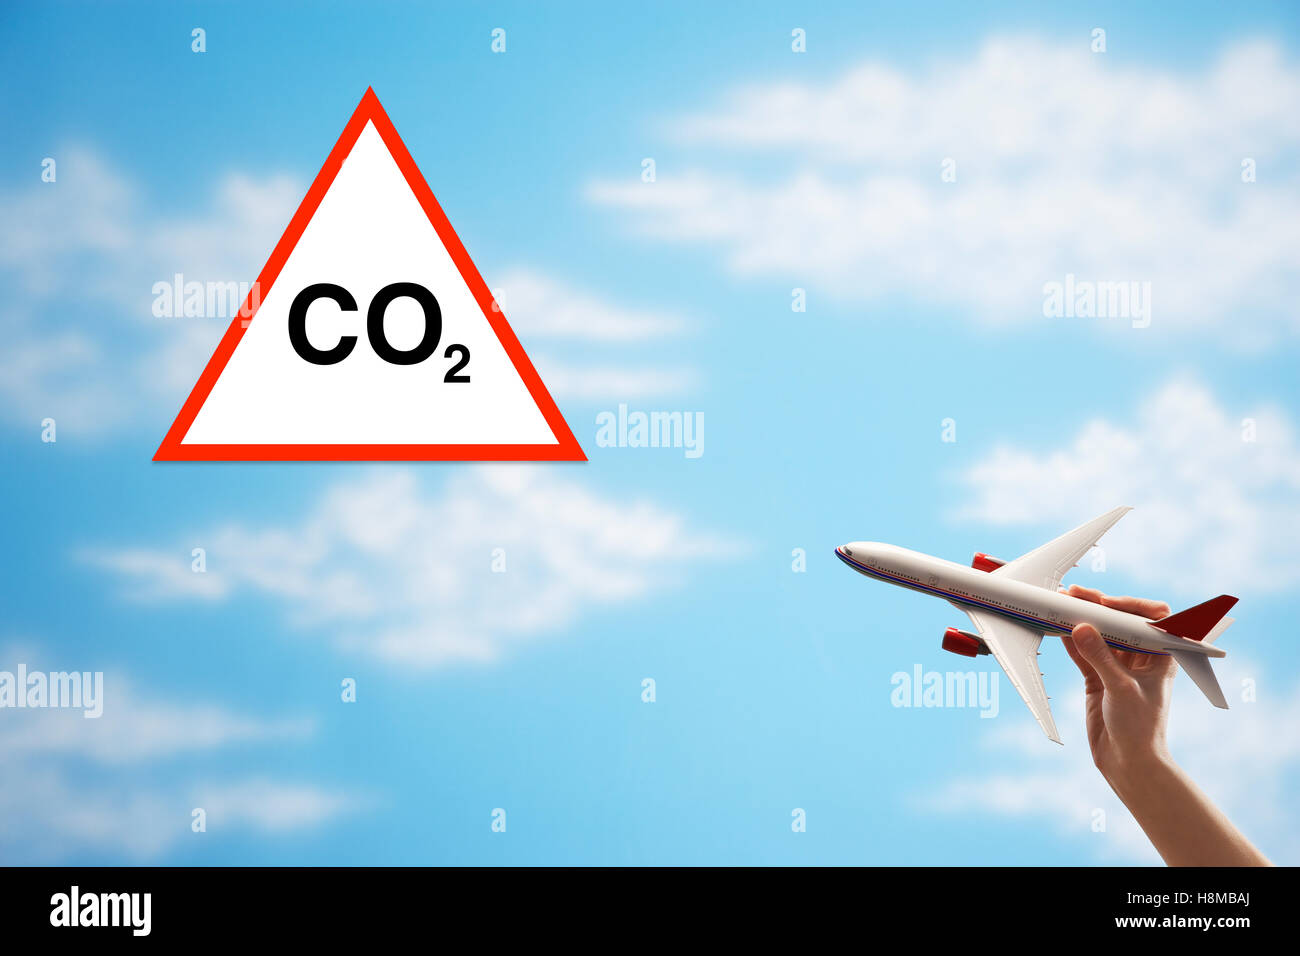 Closeup of woman's hand flying toy plane against cloudy sky with warning CO2 sign Stock Photo